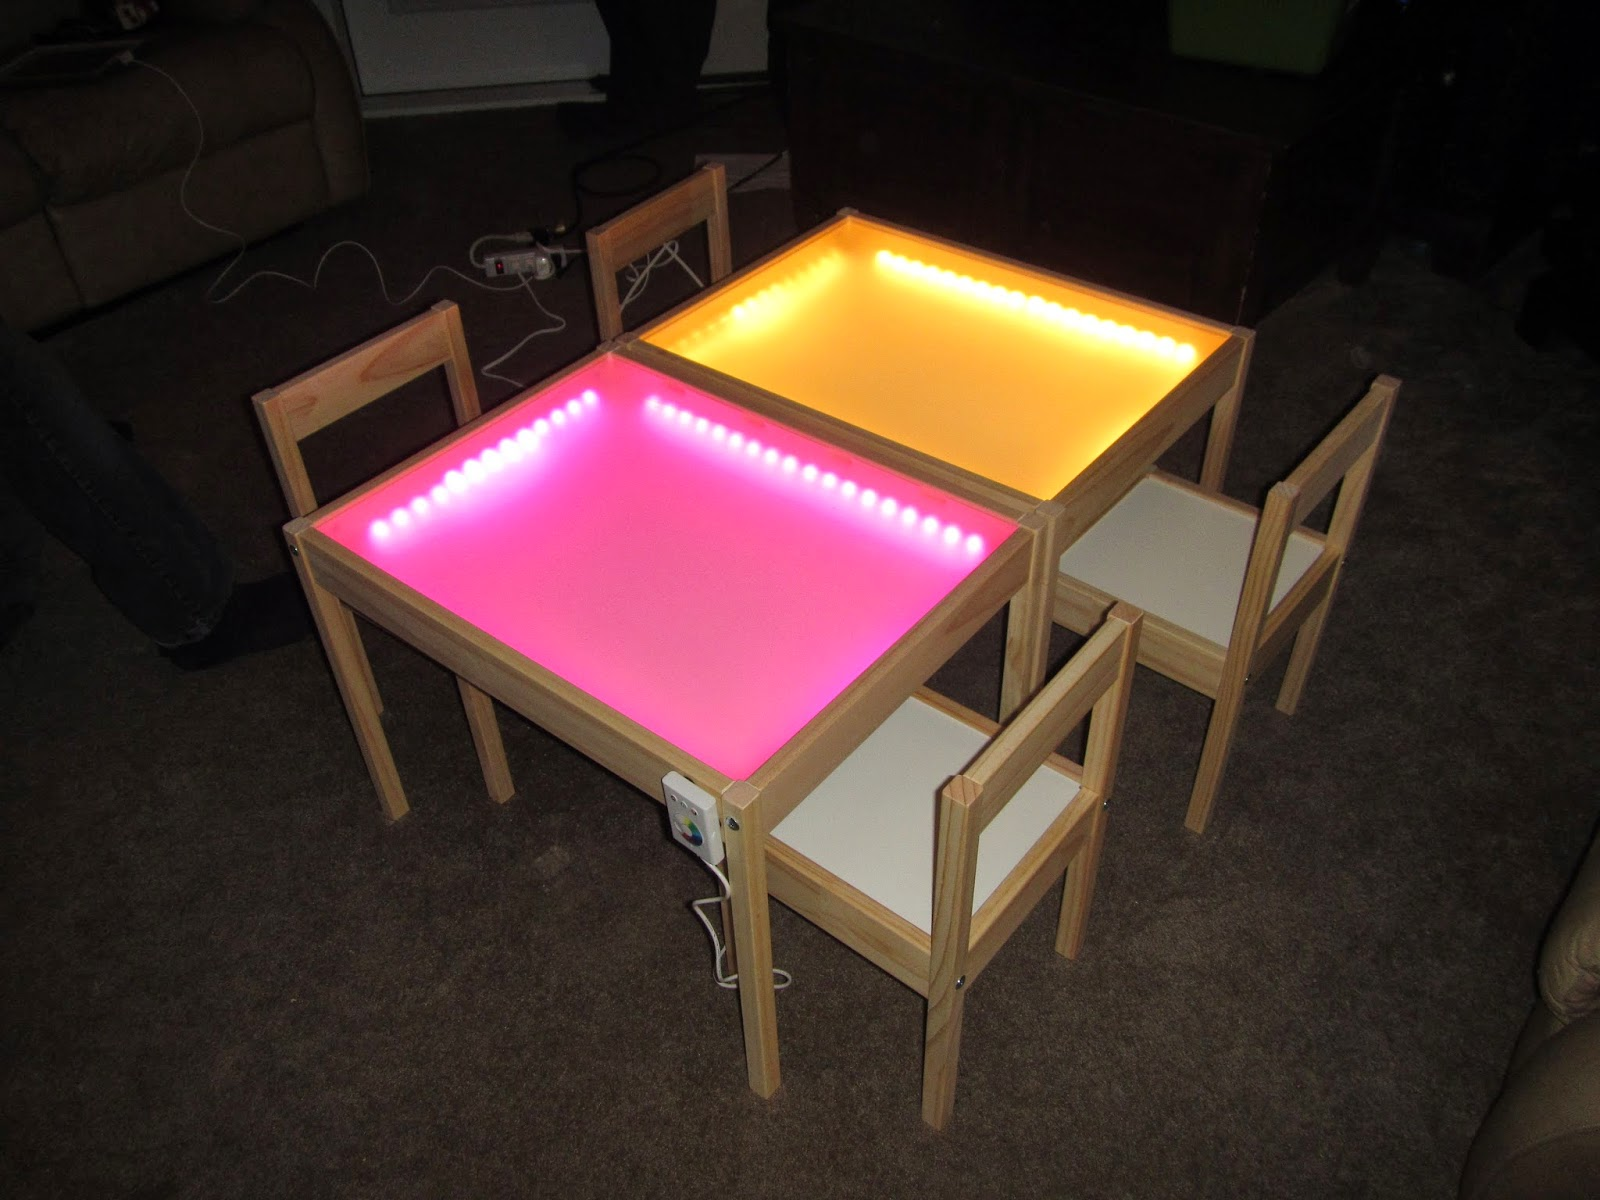 Hobby mommy creations diy light table ikea hack - Fabriquer une table lumineuse led ...